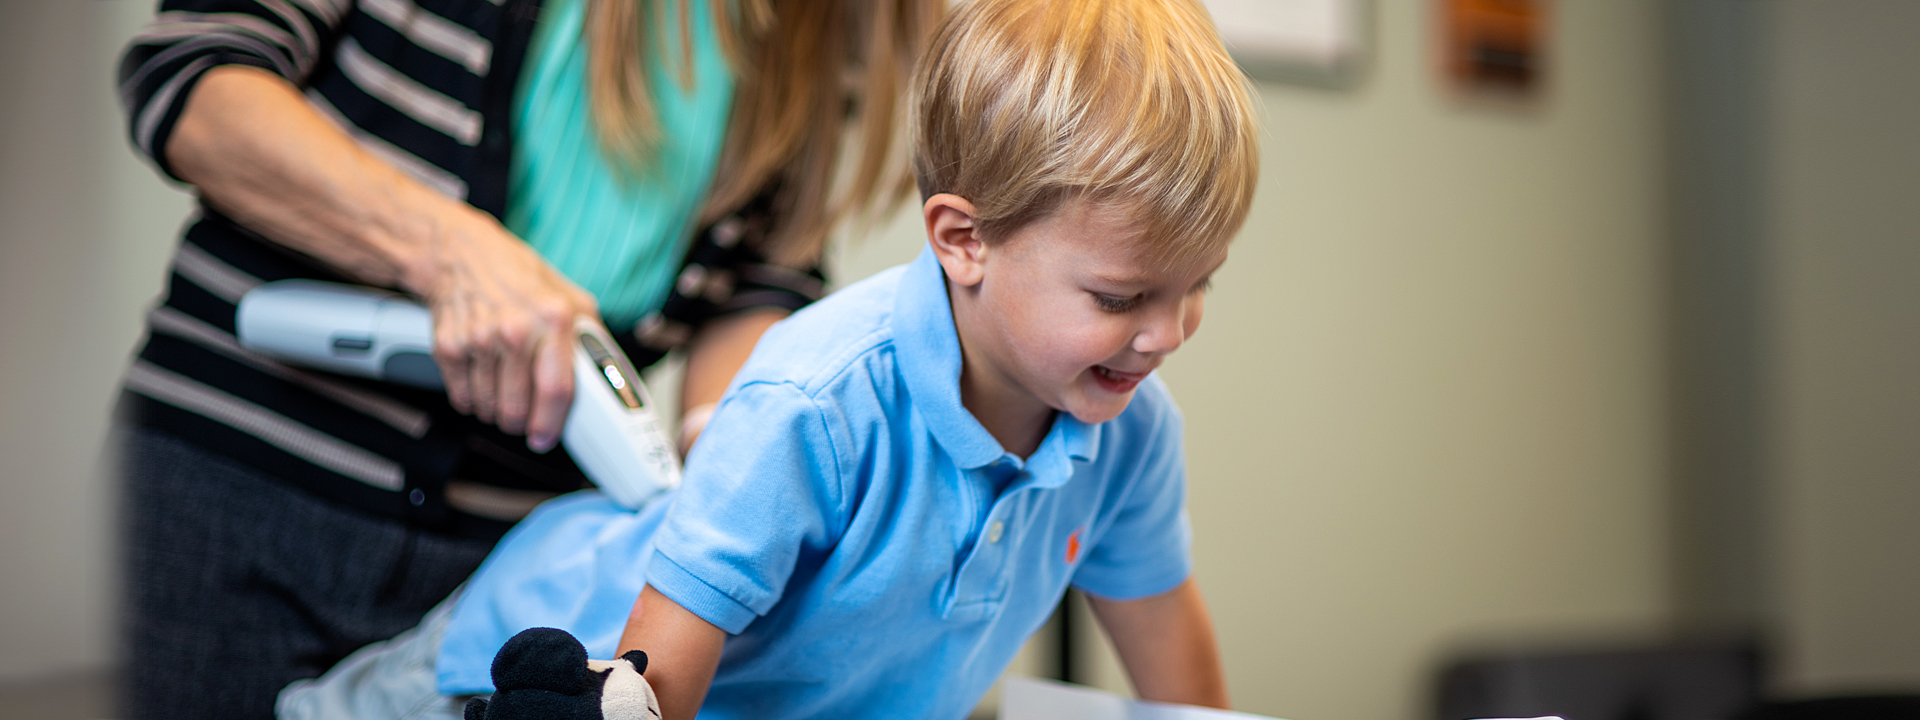 Chiropractic Pediatric Care in West Palm Beach